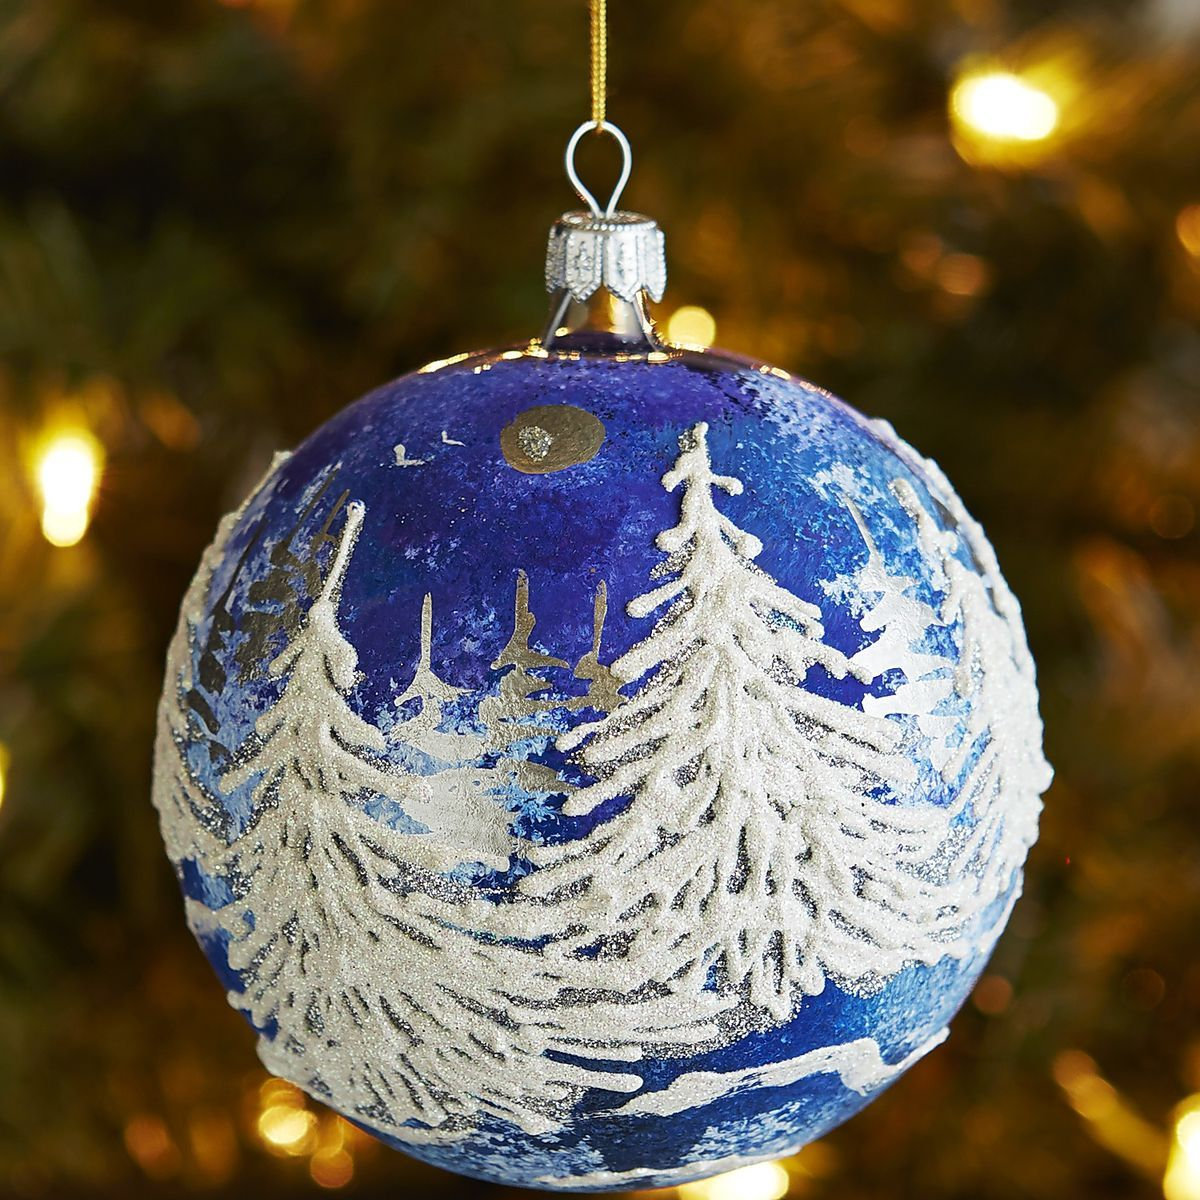 European Glass Relief Trees Ornament Blue Christmas Ornament Crafts Painted Christmas Ornaments Hand Painted Ornaments